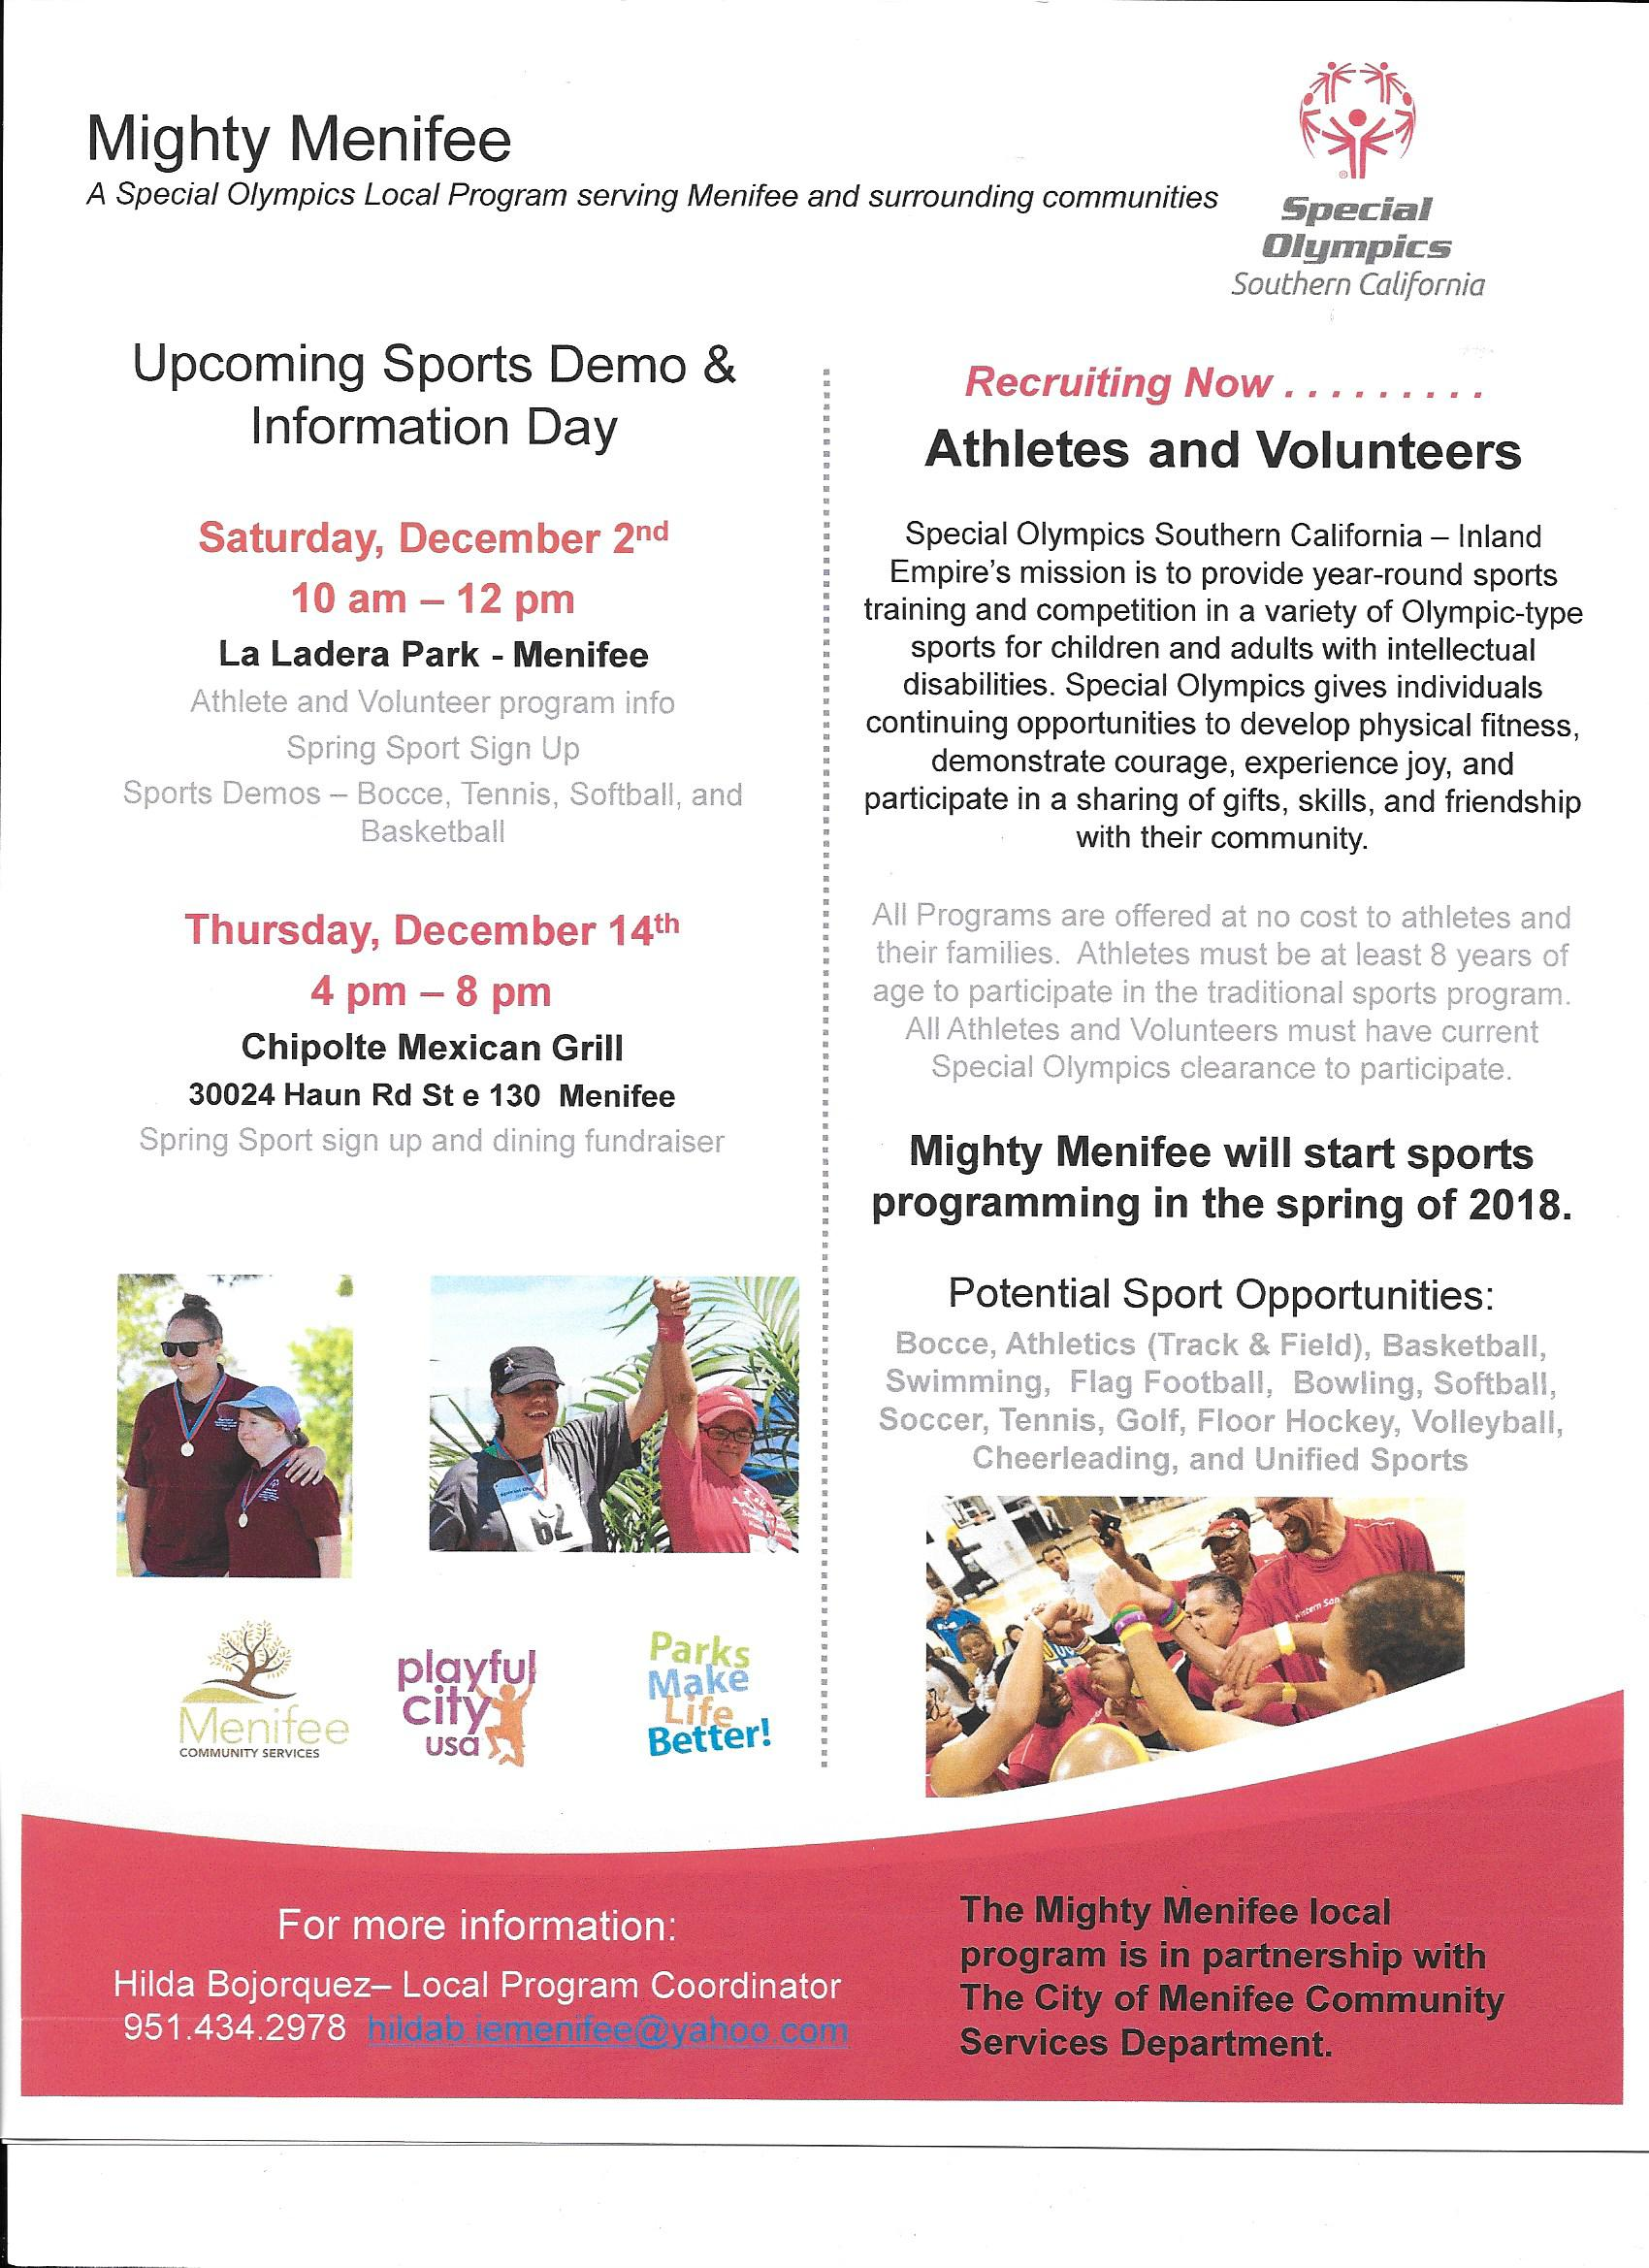 Mighty Menifee Upcoming Sports Demo  12-2-17